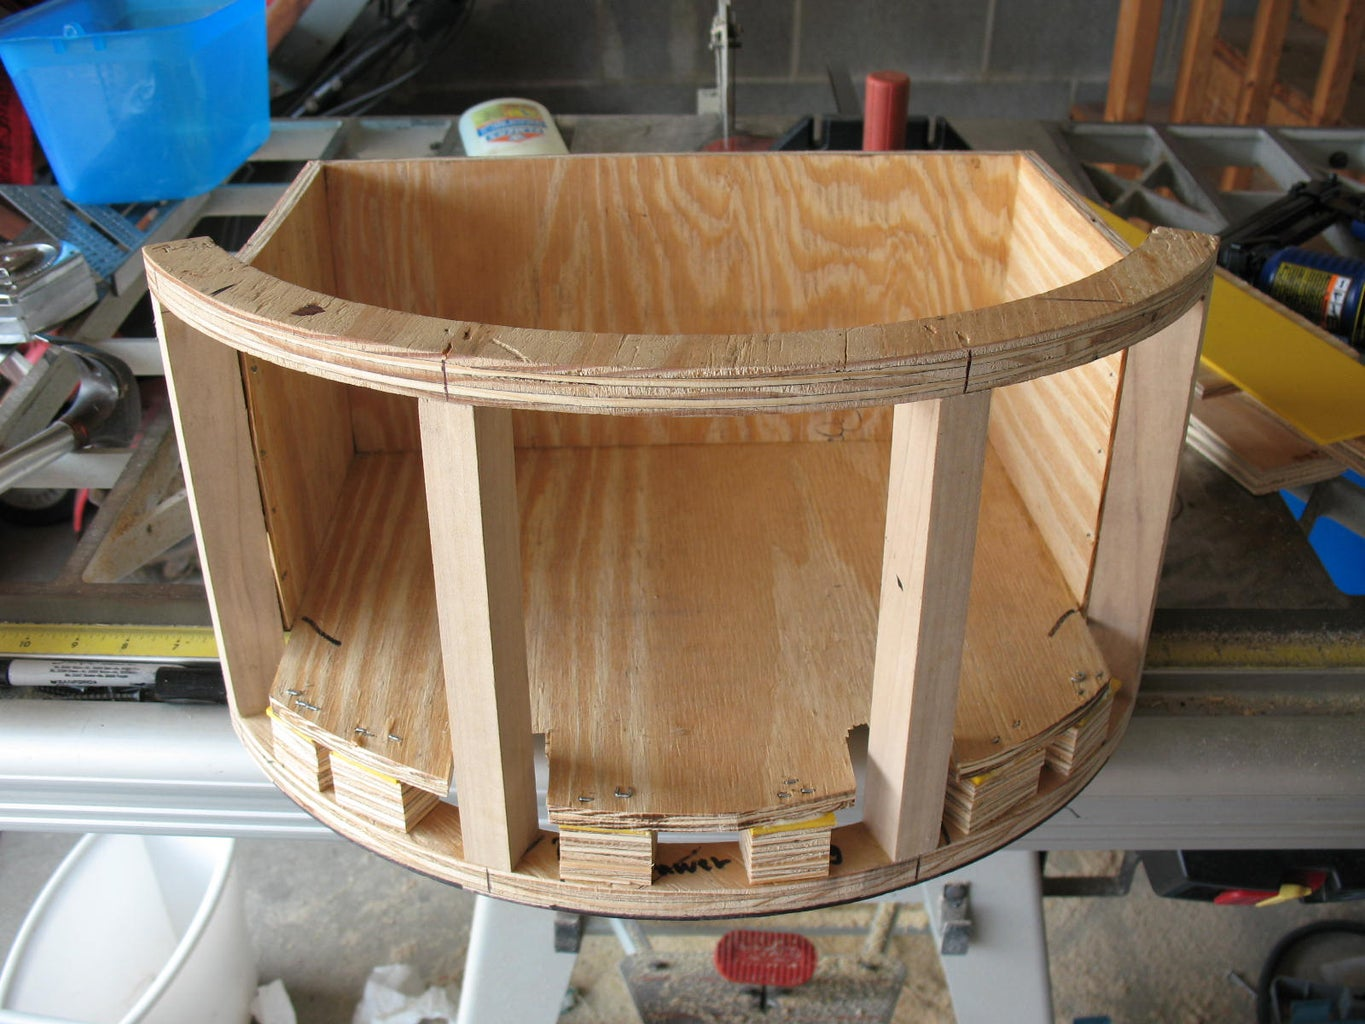 Constructing the Drawer